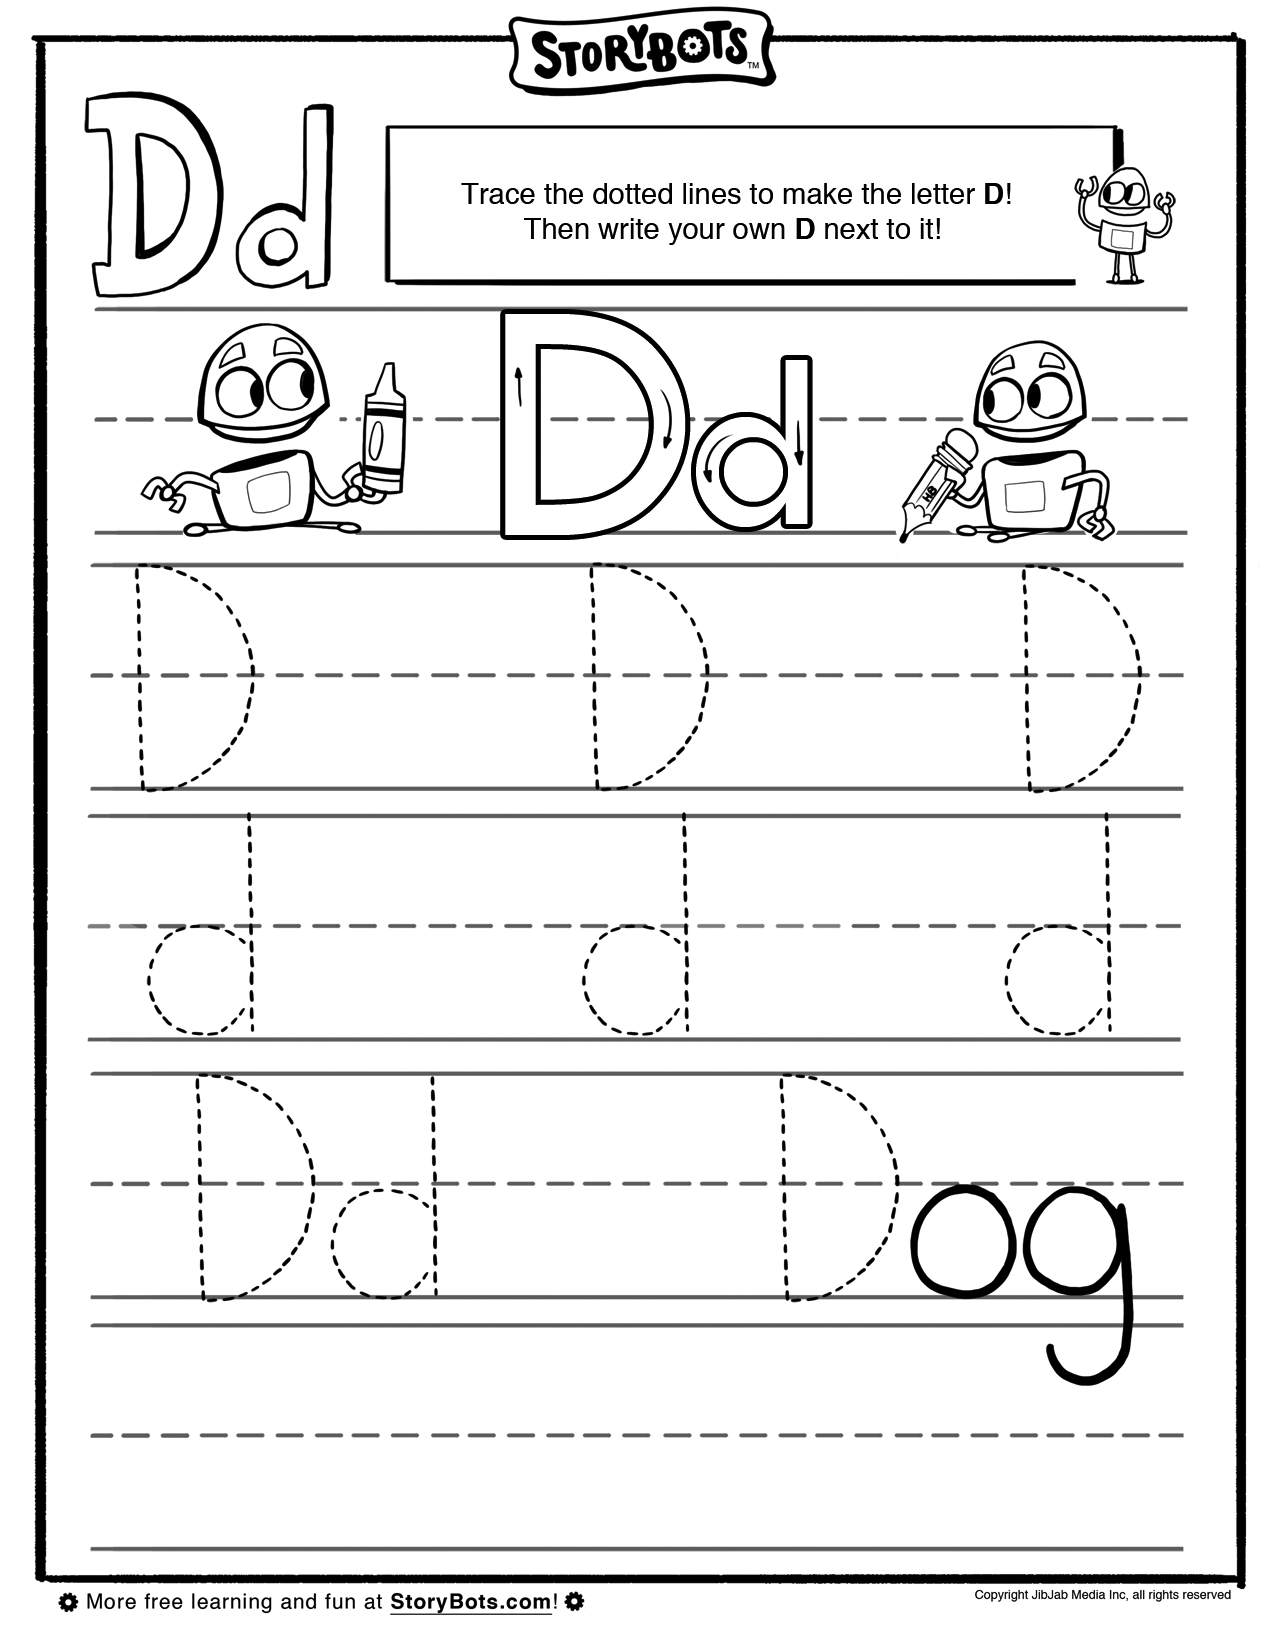 It S Easy To Draw A Letter D Just Trace The Dotted Lines